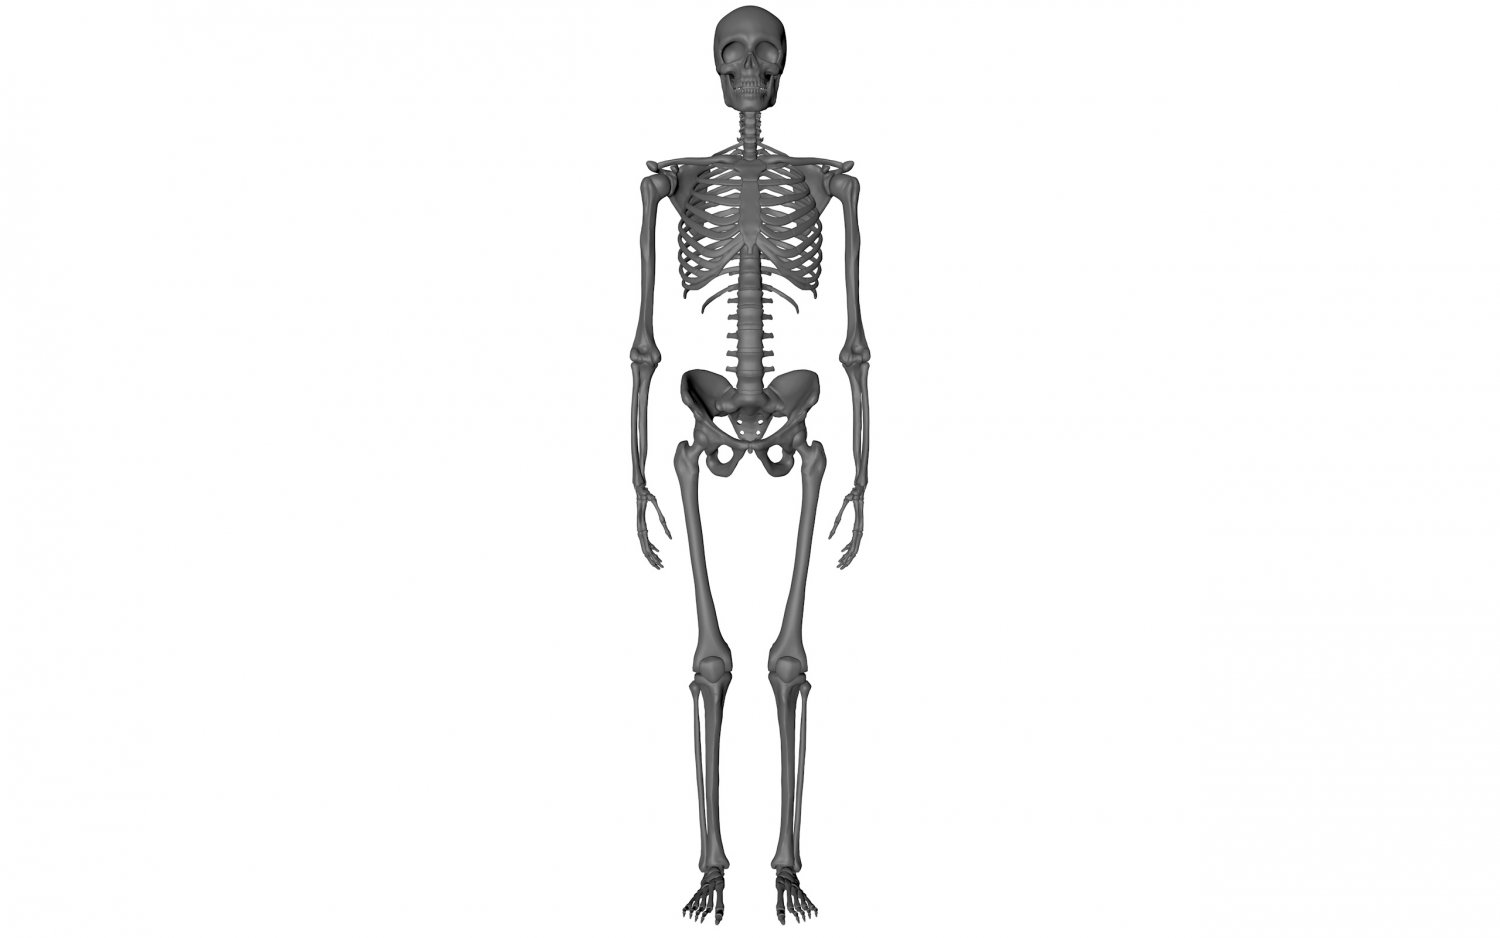 Skeleton Free 3D Model in Anatomy 3DExport